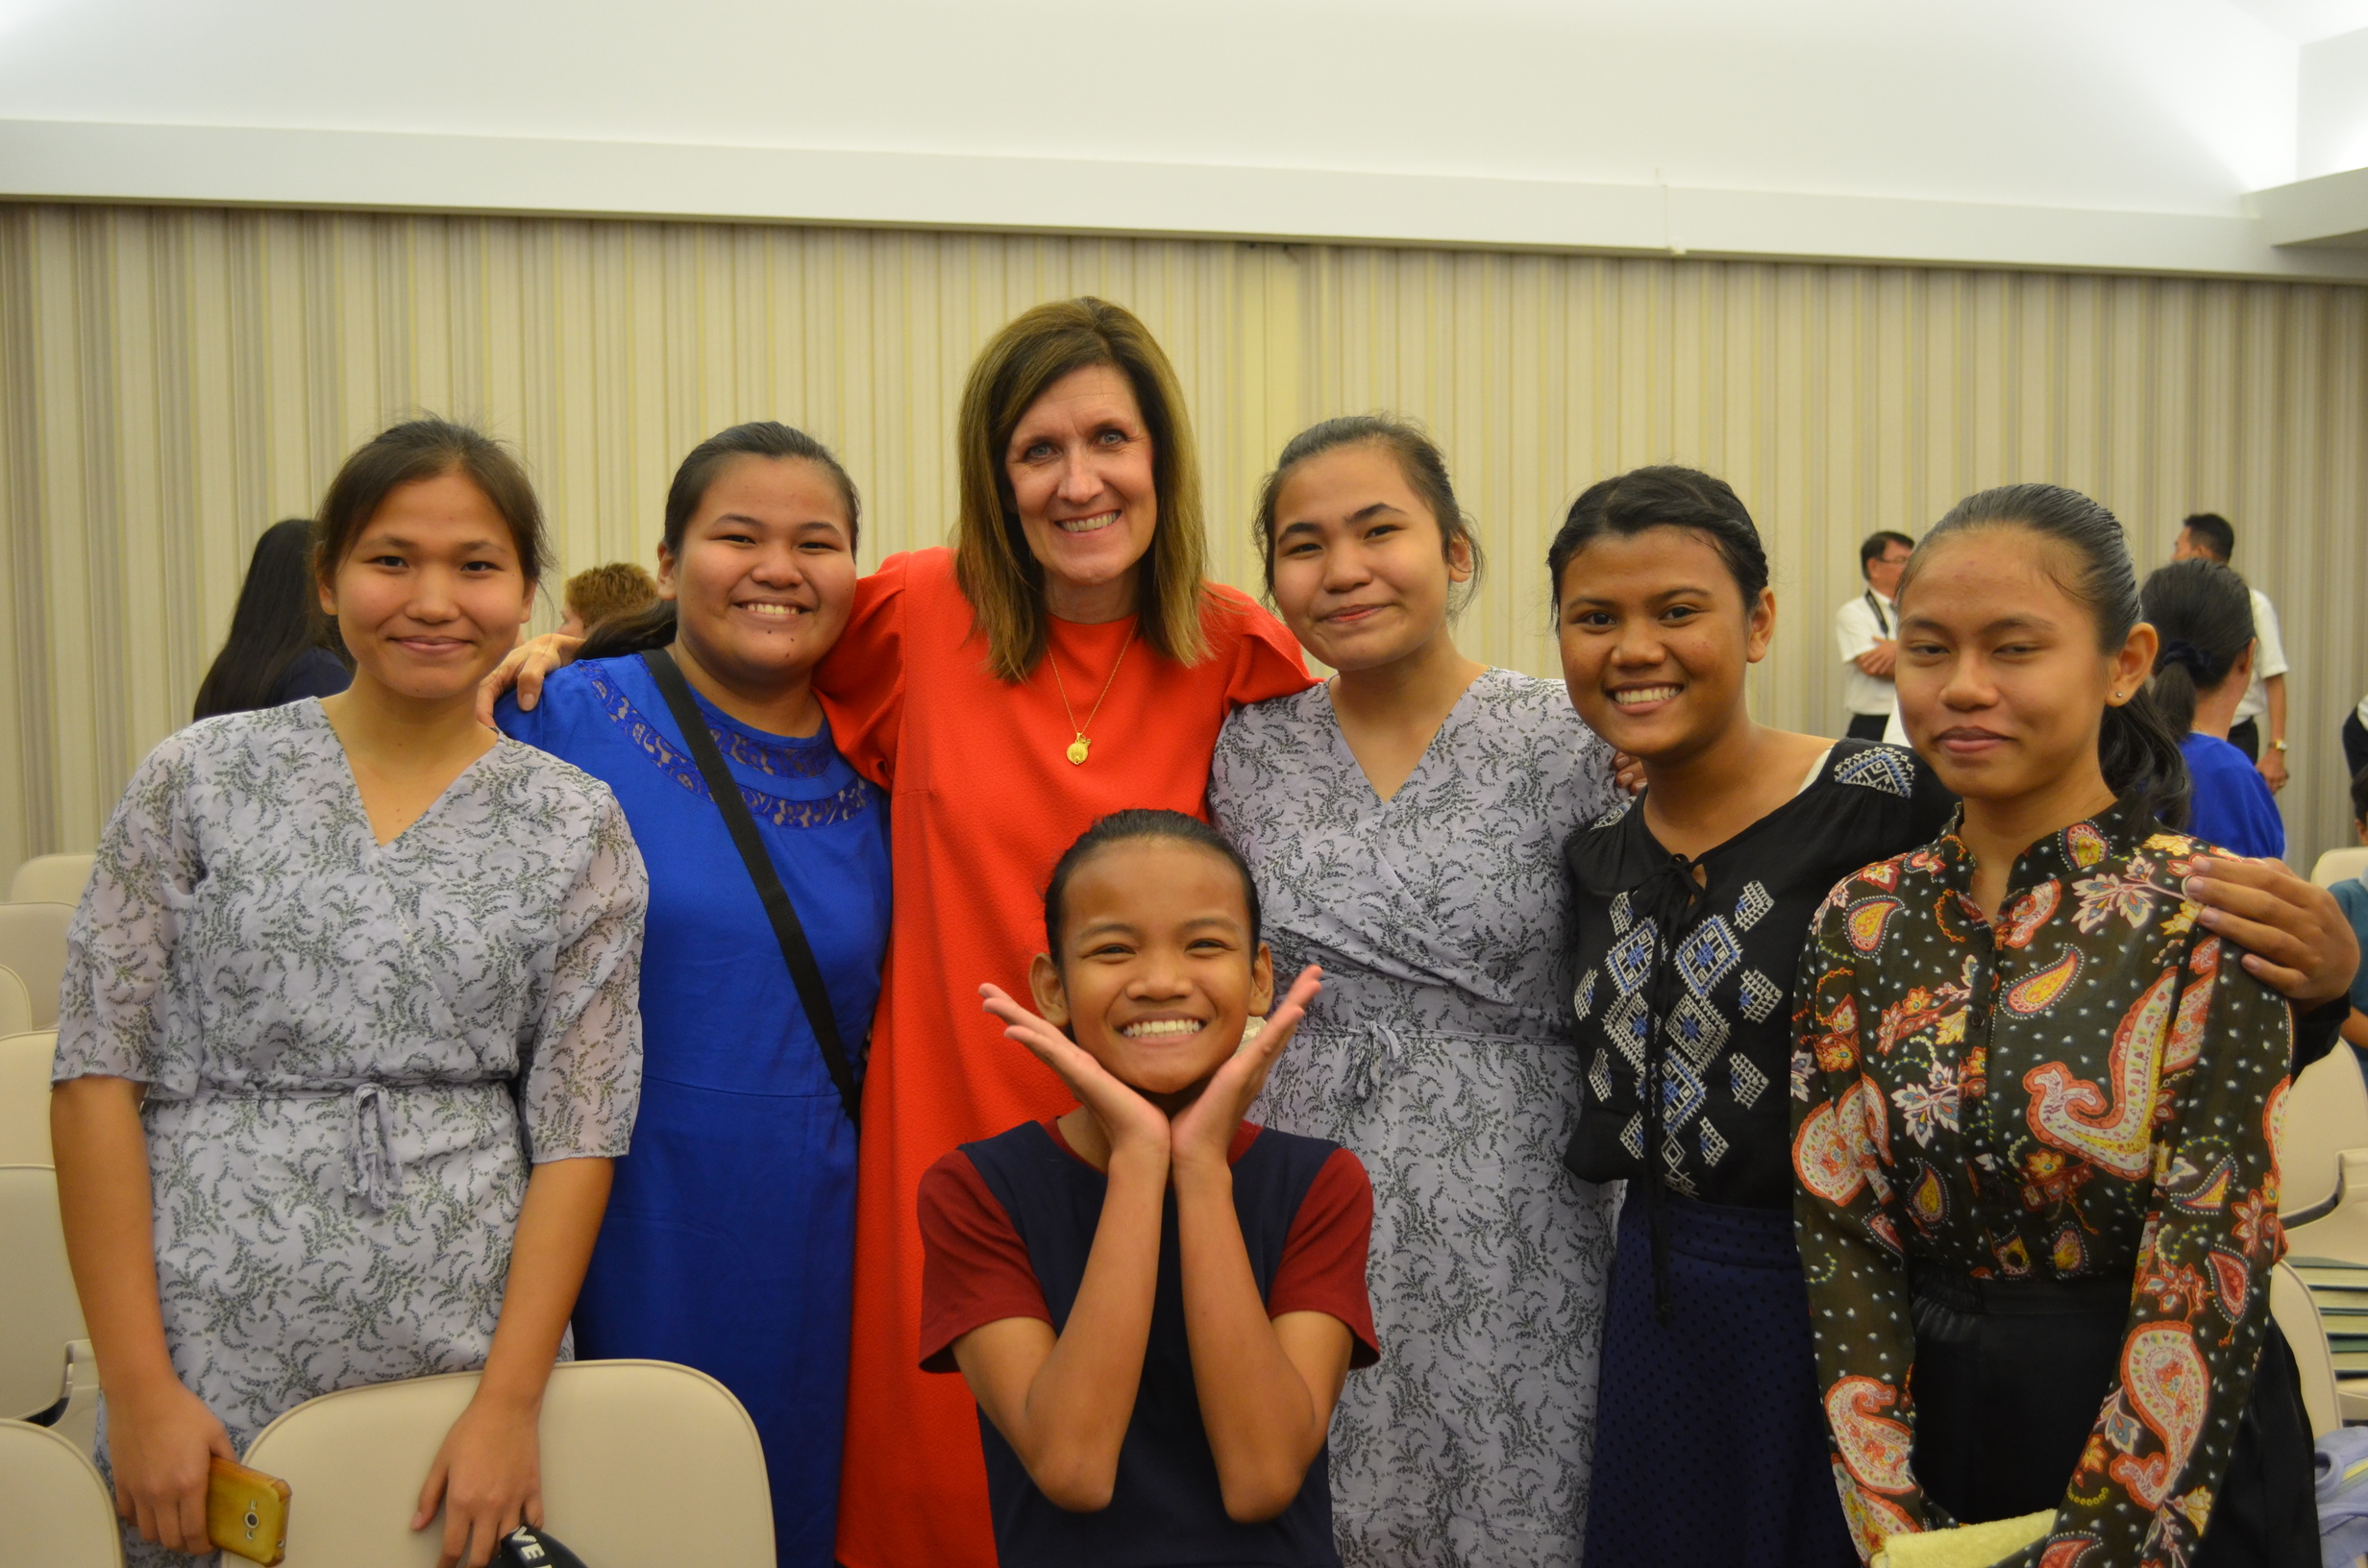 Sister Michelle D. Craig, first counselor in the Young Women general presidency, poses with a group of young women following a youth devotional in Miri, Malaysia, during a visit to the Asia Area of the Church from Aug. 17 to 24, 2019.